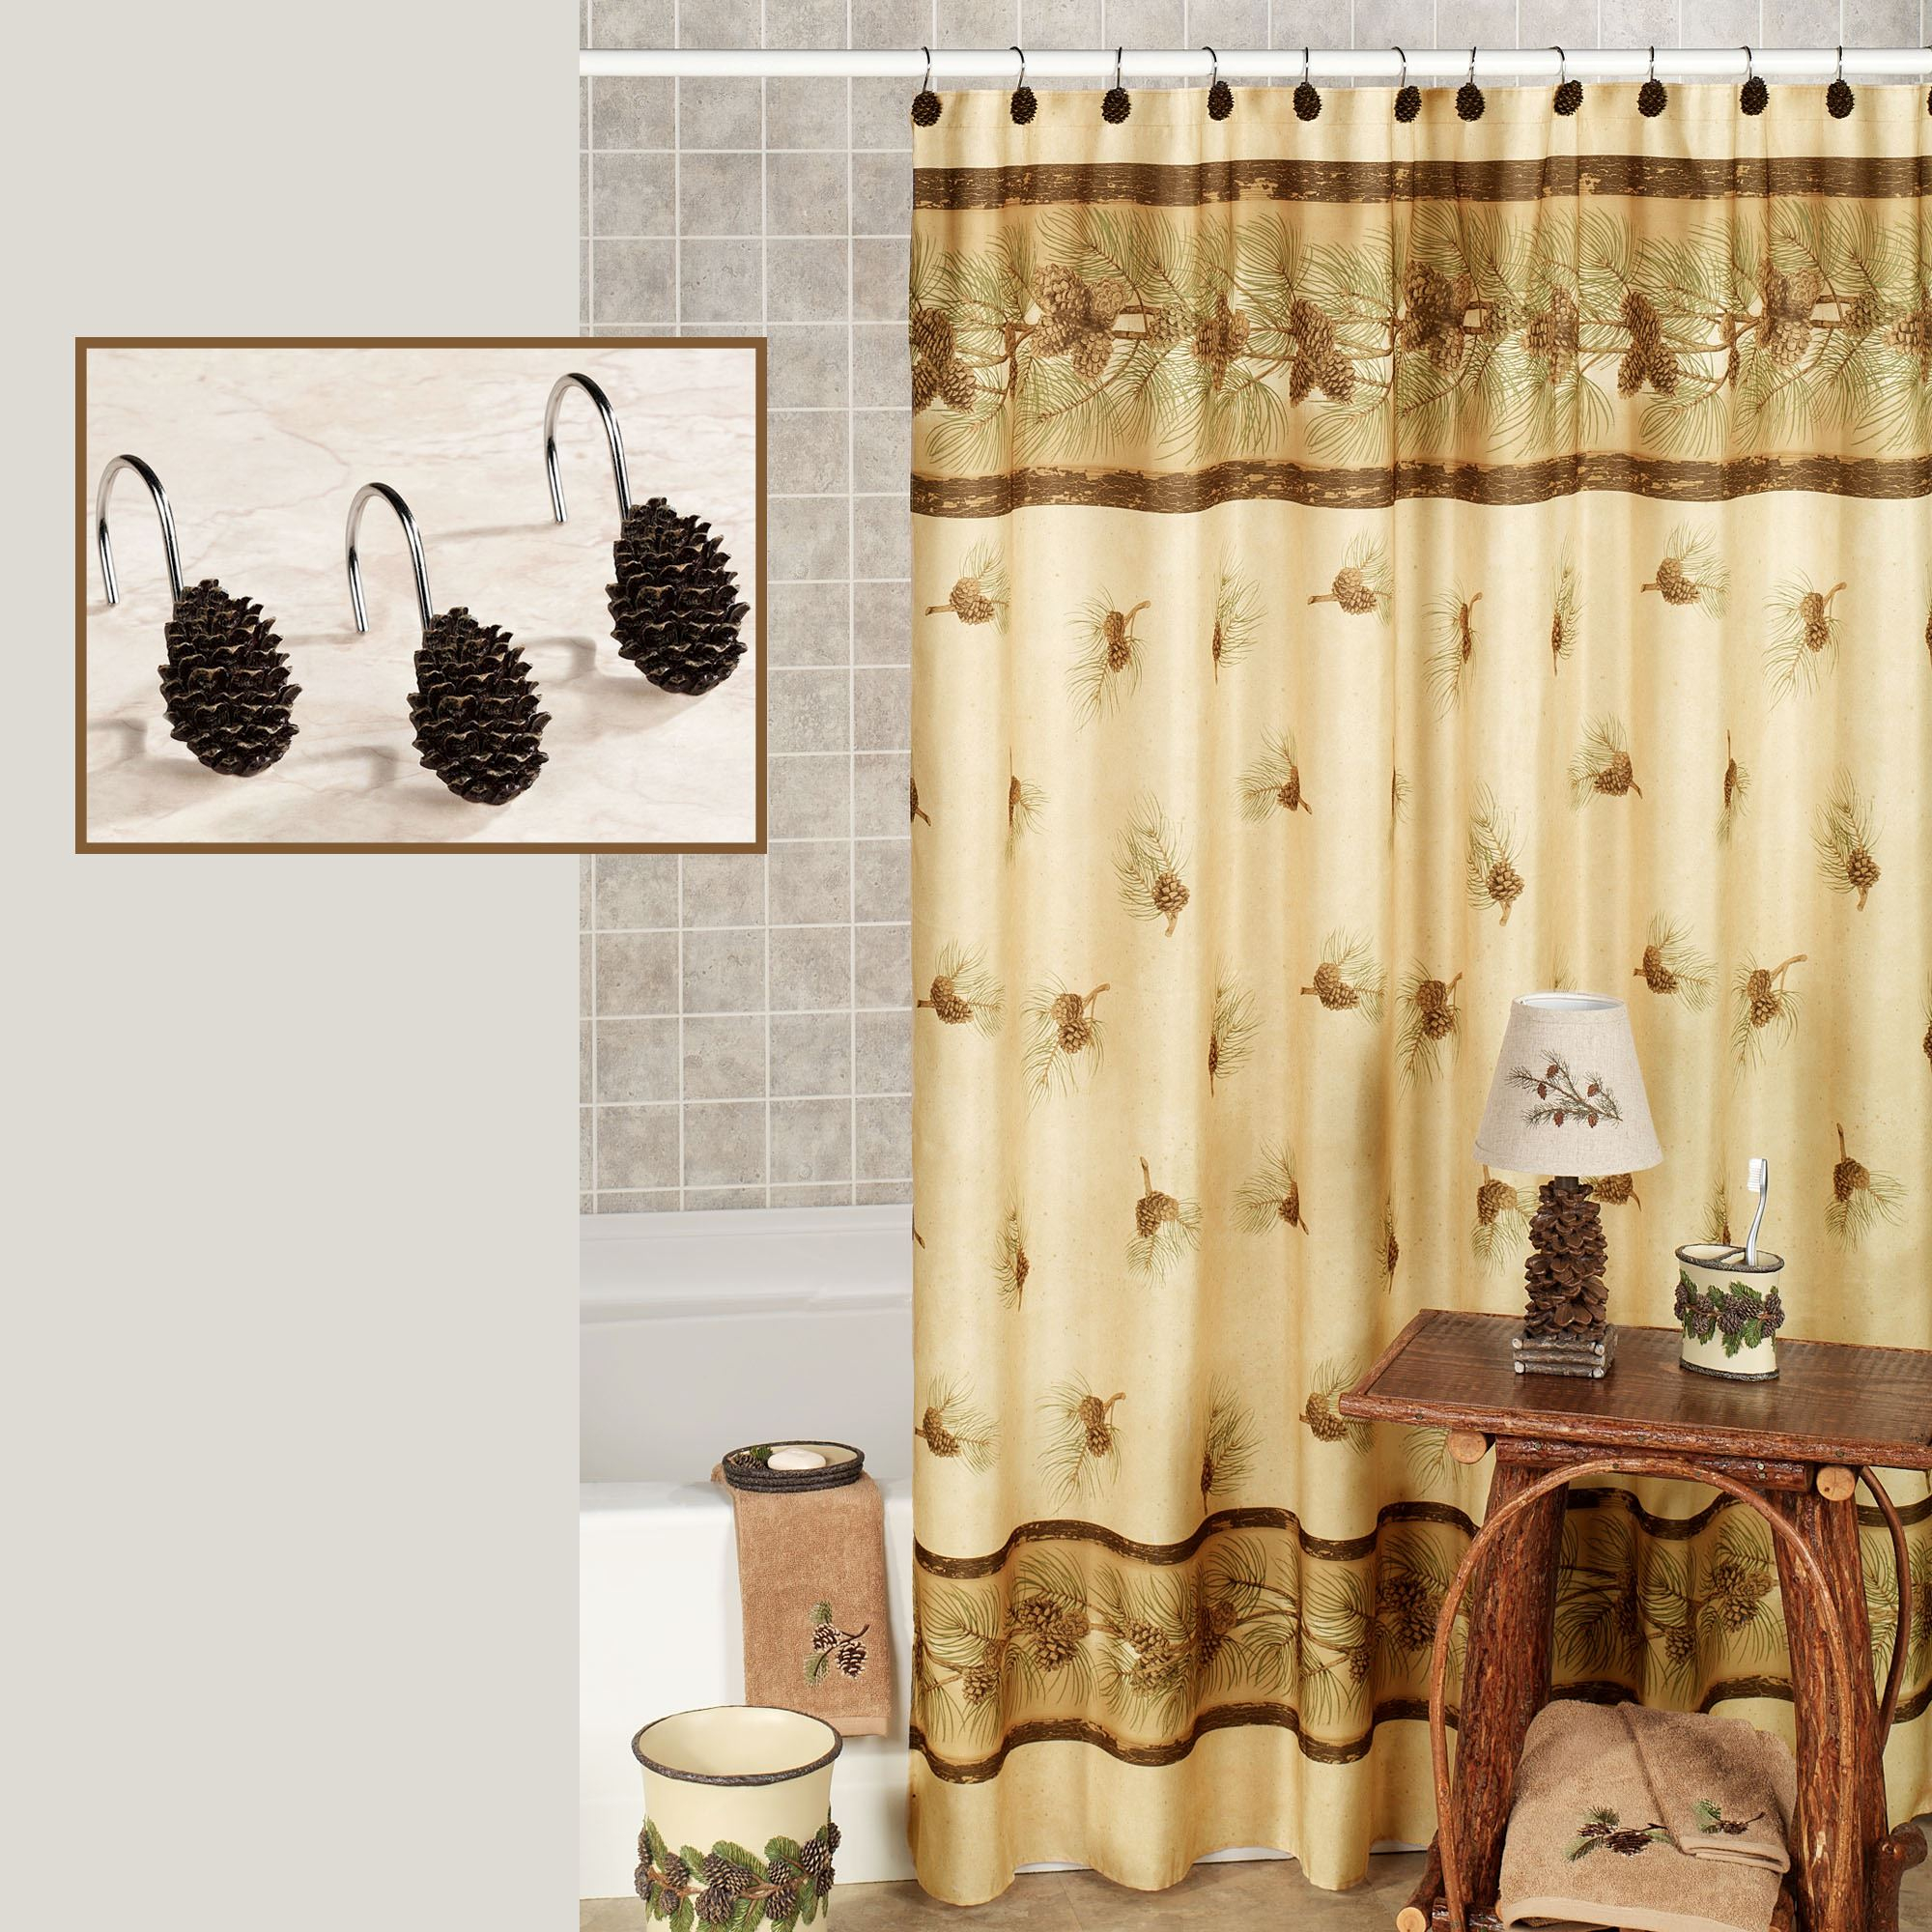 curtains navy shower bathroom and cotton pin bath blocking blend s features sets curtain the add classic color contemporary stripe izod your contrasting bold with to white